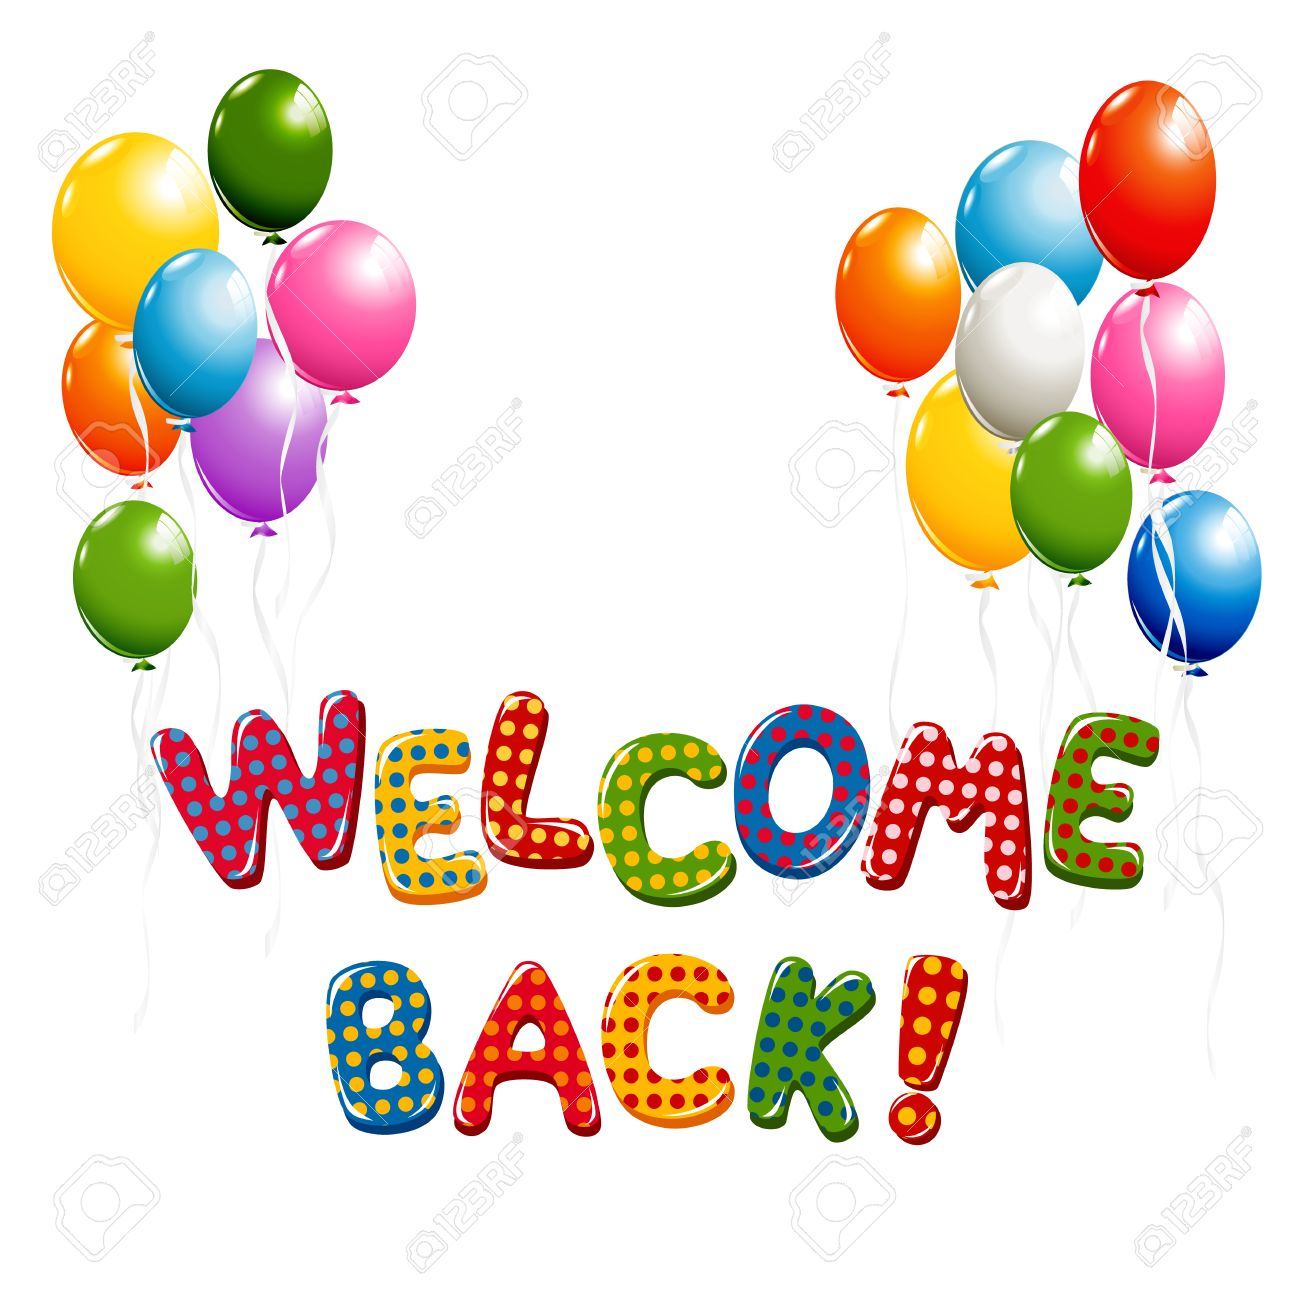 Welcome Back text in colorful polka dot design with balloons.